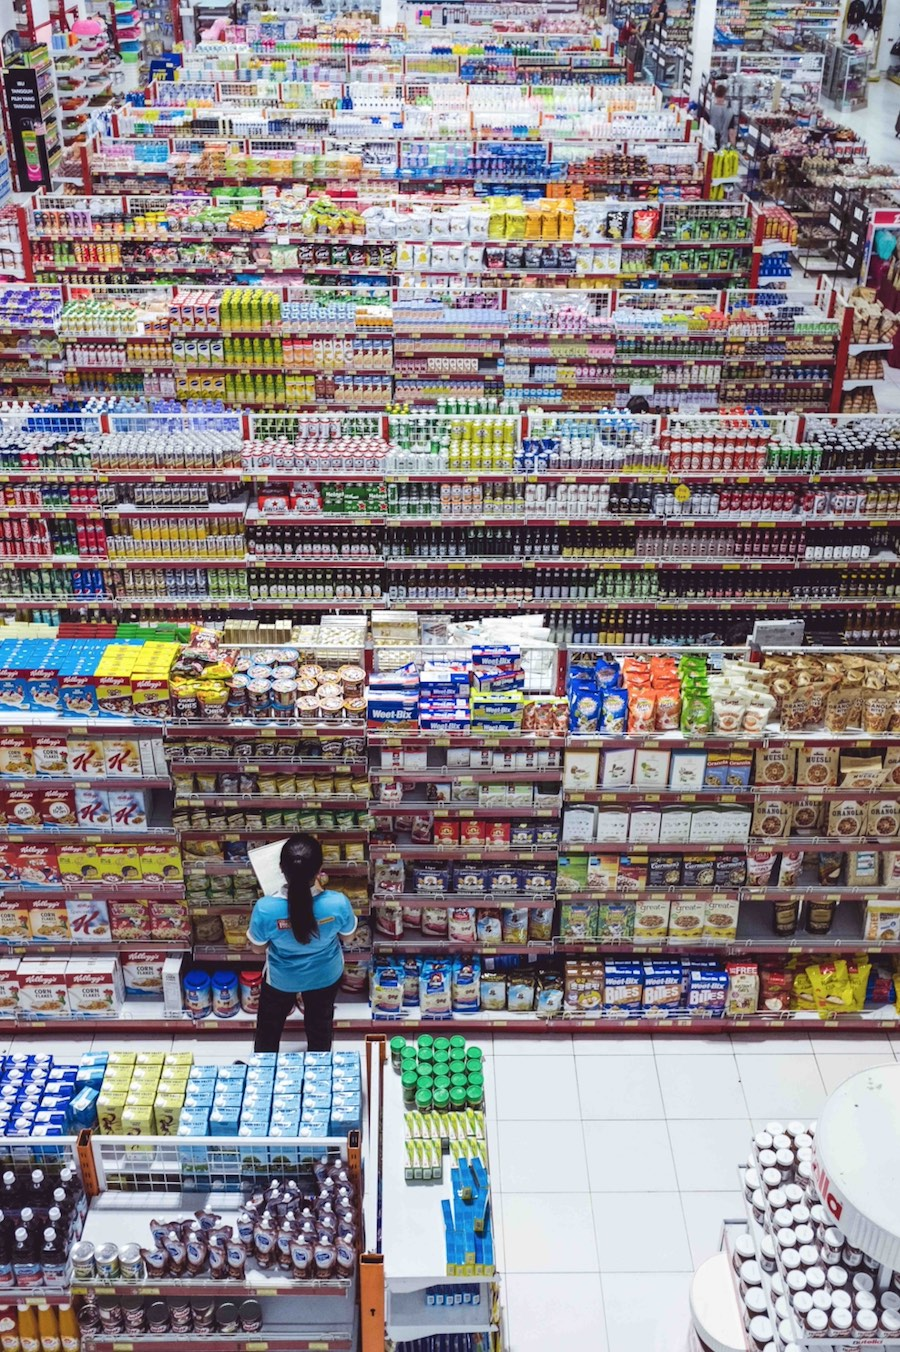 A survey of major UK grocery retailers, their use of single-use plastic packaging and their targets to reduce it is taking place. Photo:Bernard Hermant on Unsplash.